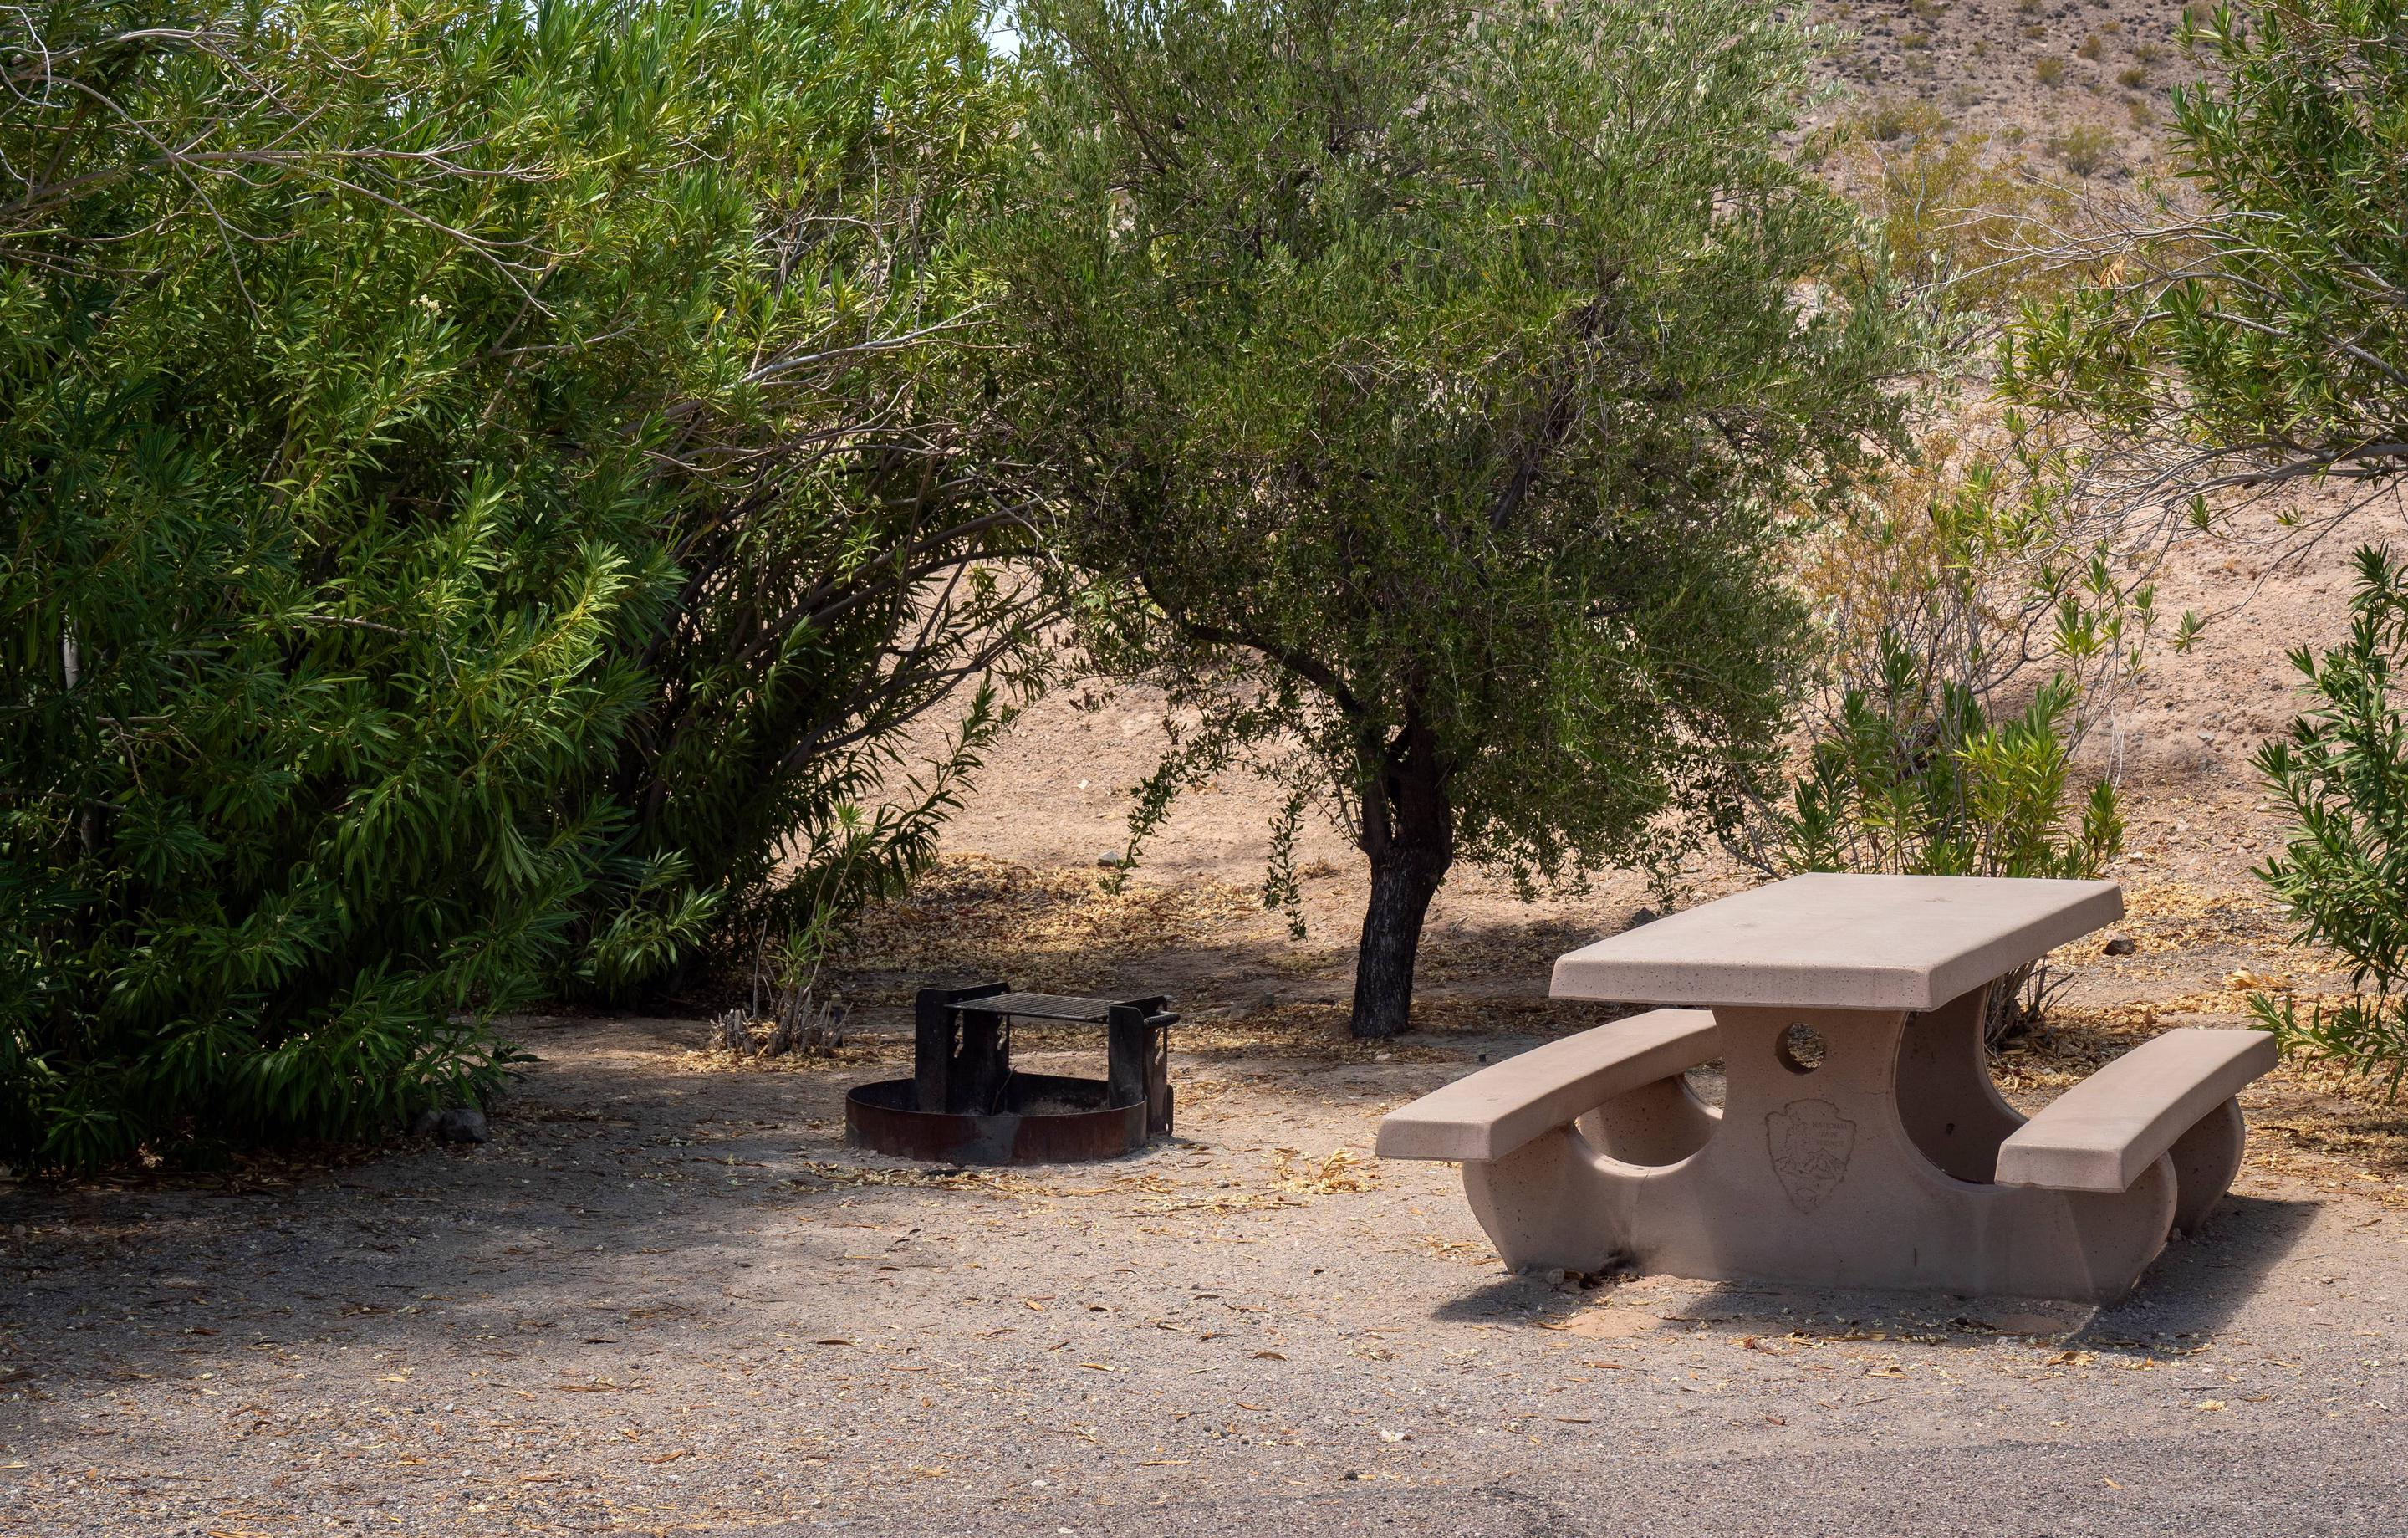 Campsite located in a desert setting1Callville Bay Campground